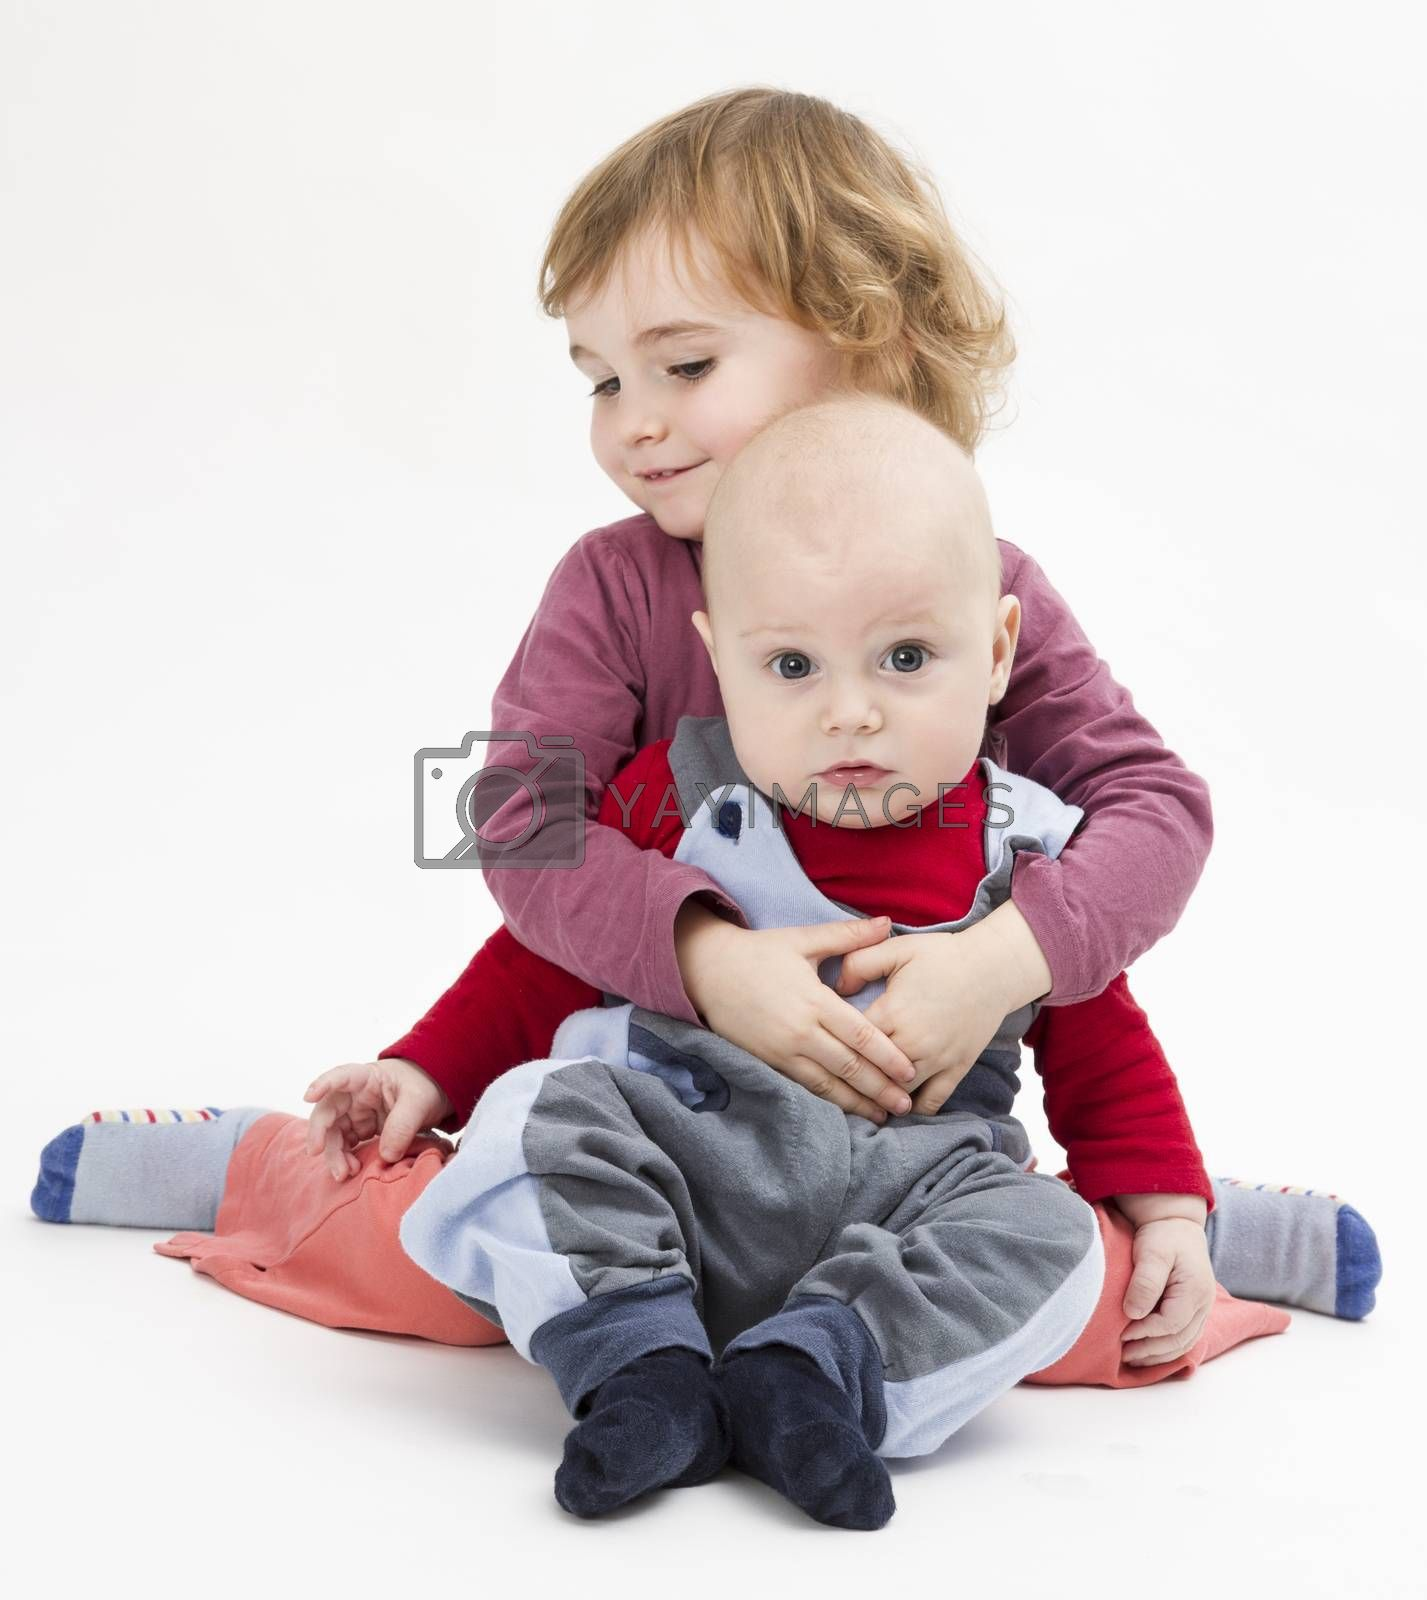 baby boy with 3 year old sister sitting in light background